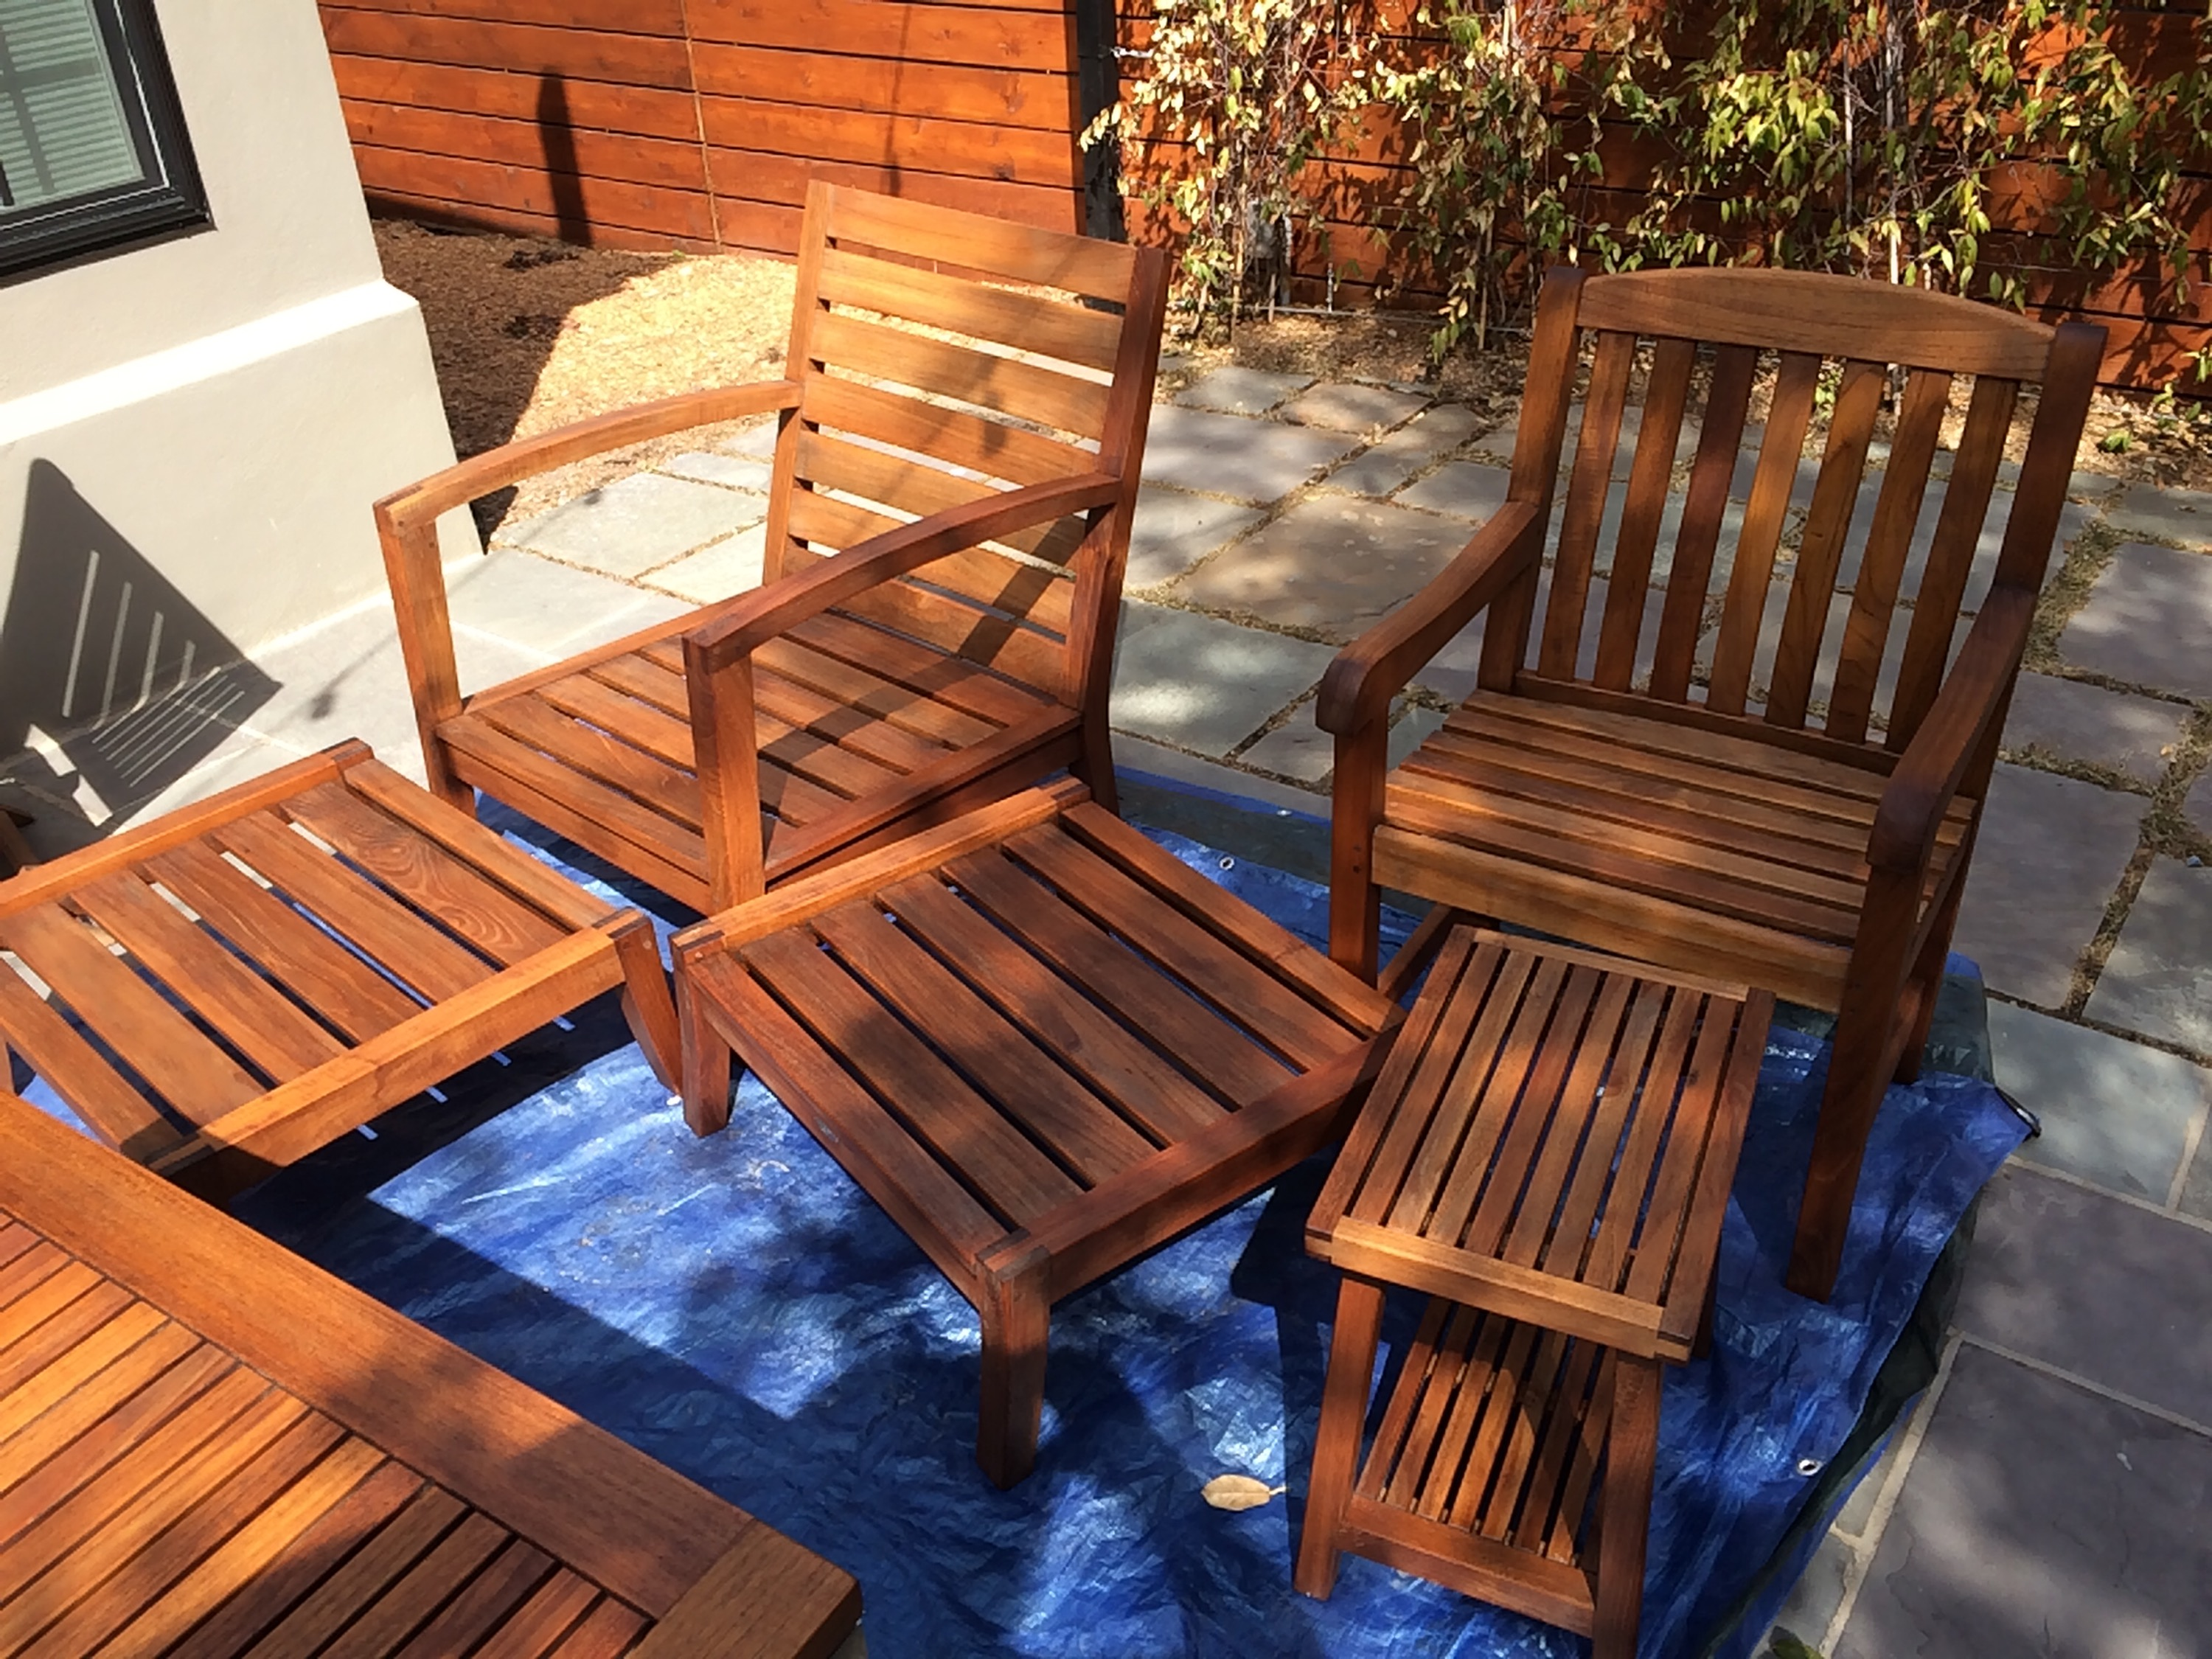 Oxidized, Grey Dried Out Teak Furniture Brought Back To Life With Linseed  Oil! I Cleaned The Furniture With Organic Linseed Oil Soap And Nurished The  Teak ...